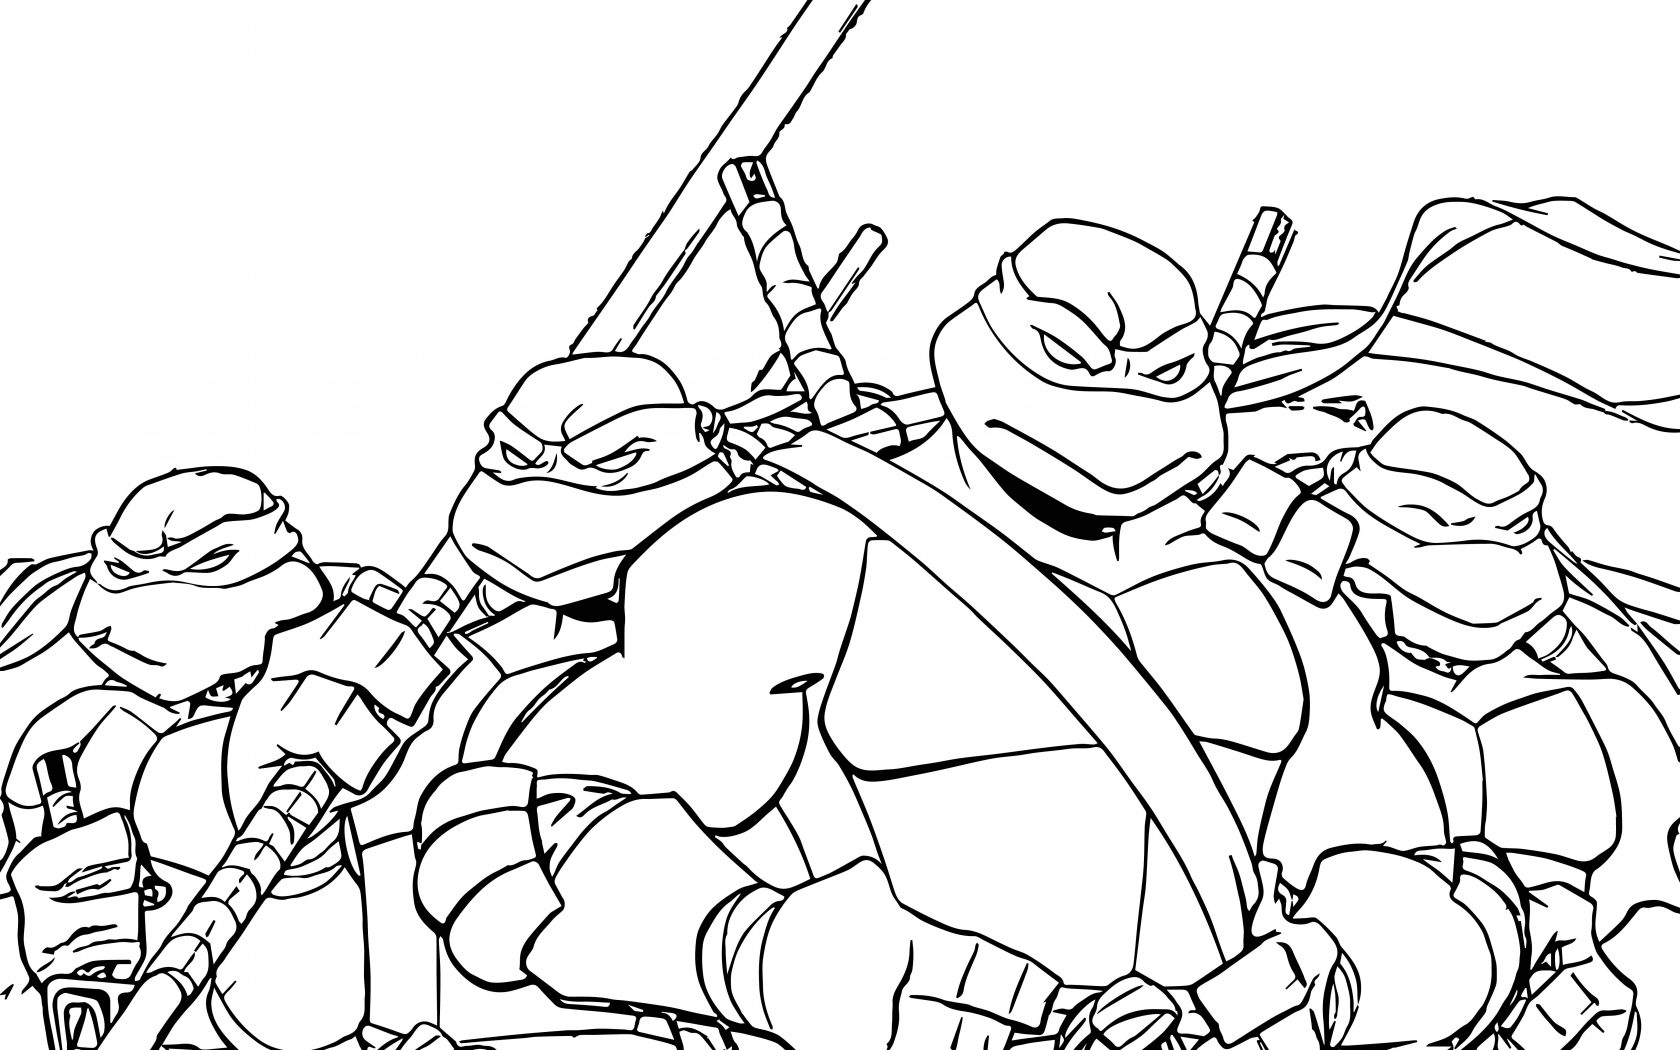 1680x1050 Images Of Teenage Mutant Ninja Turtles Printable Coloring Pages